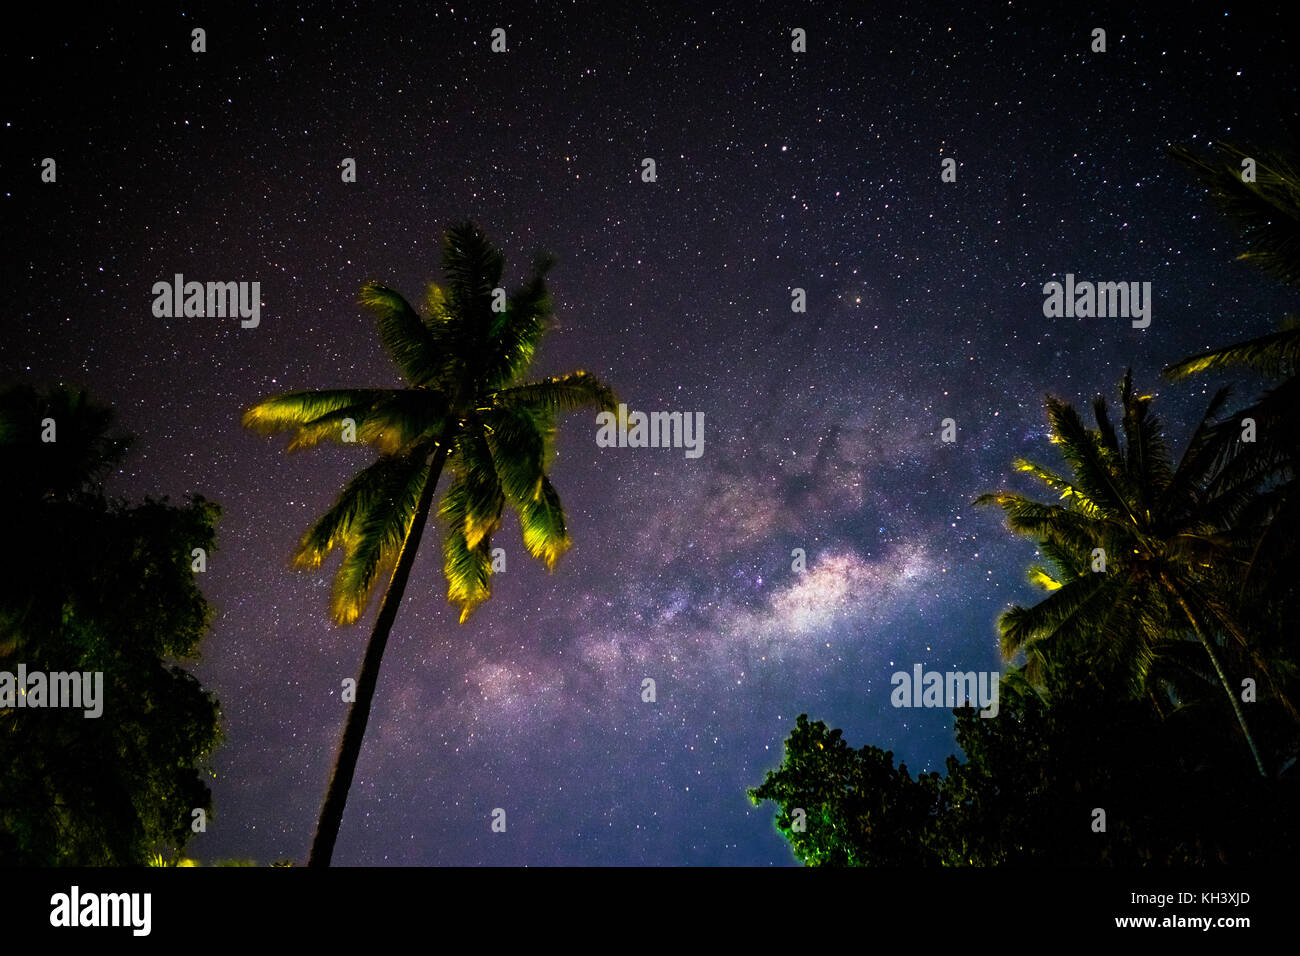 Milkyway hinter Palmen in Indonesien Stockbild